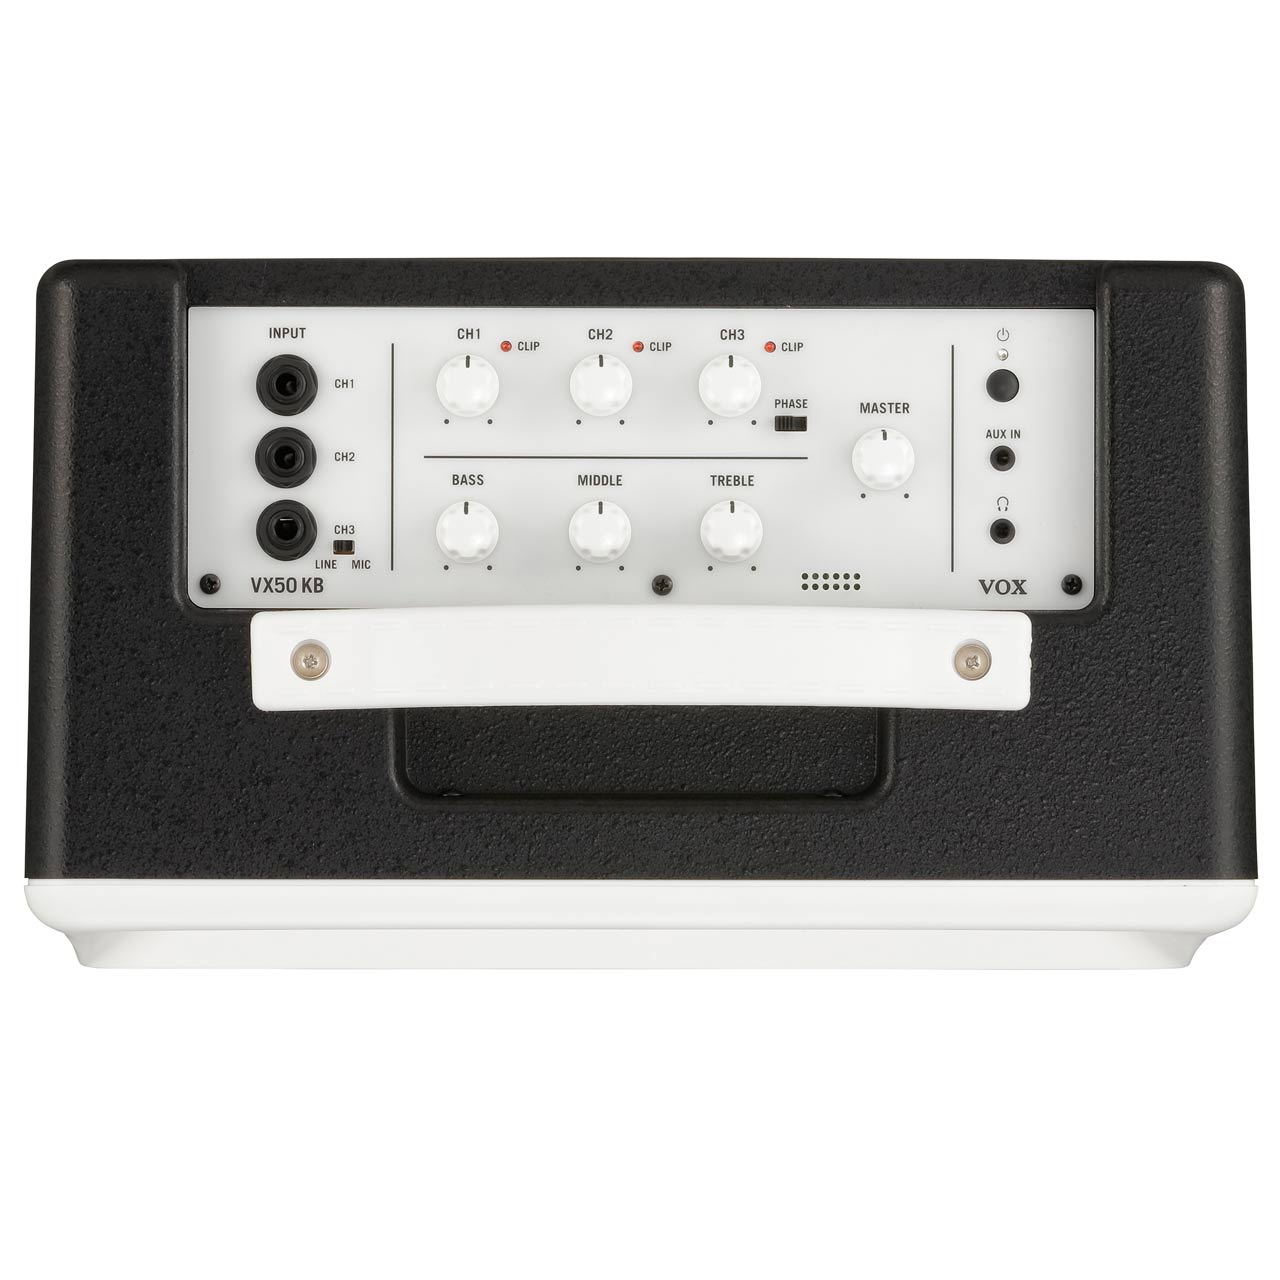 Vox Vx50 Kb Keyboard Amplifiers Instrument The Birth Of An Amplifier Null